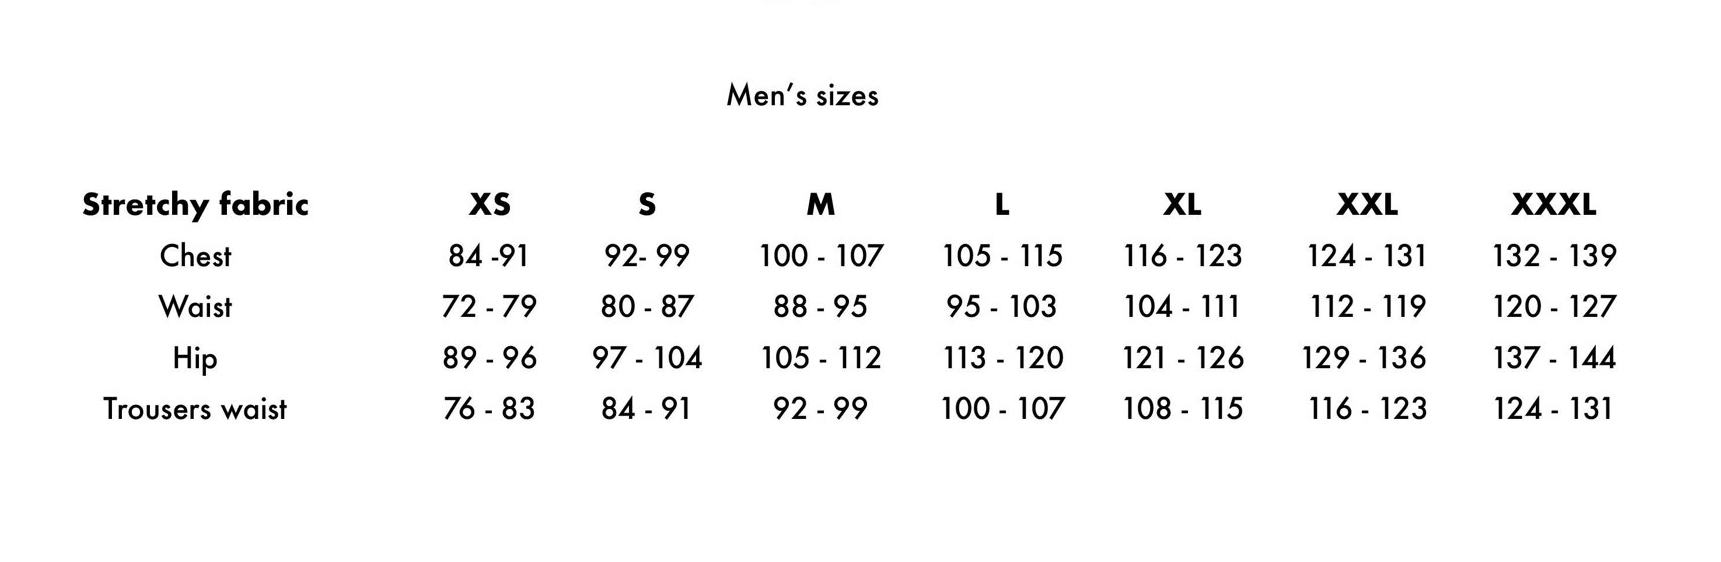 Men stretchy fabric